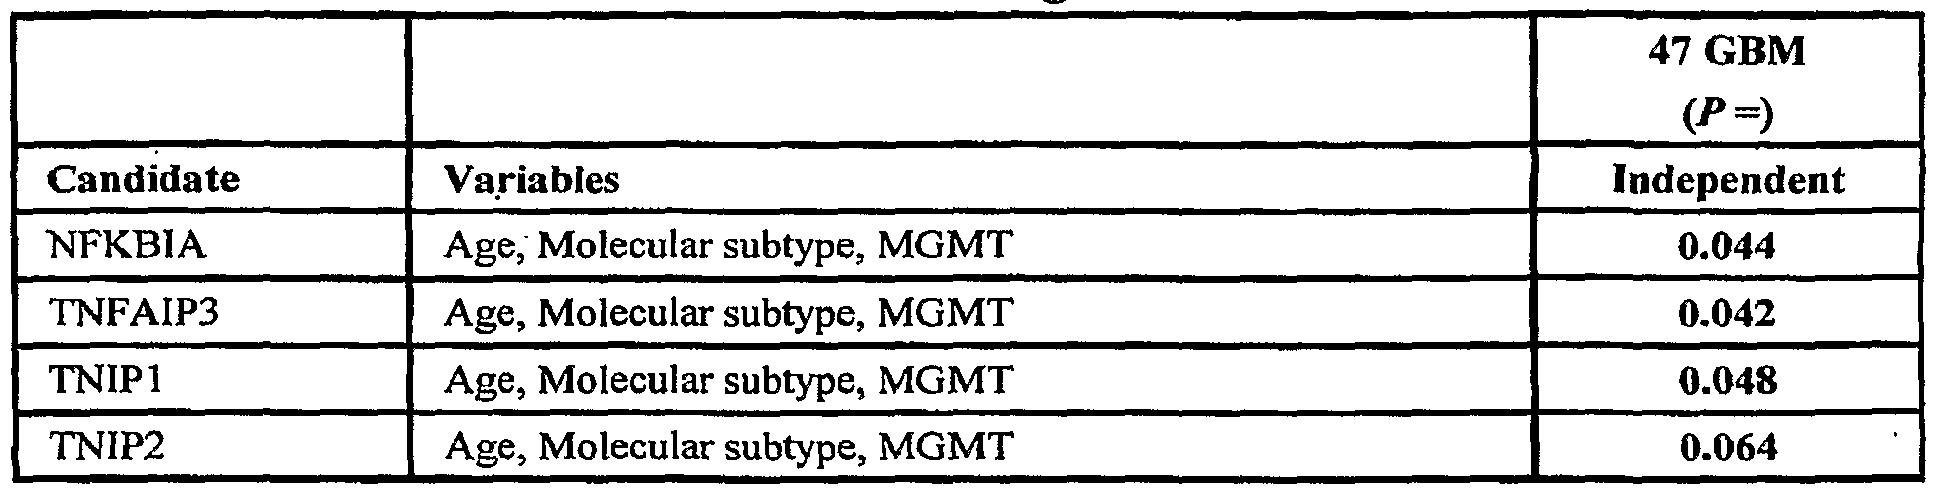 WO2007075371A2 - Protein modulators of resistance to